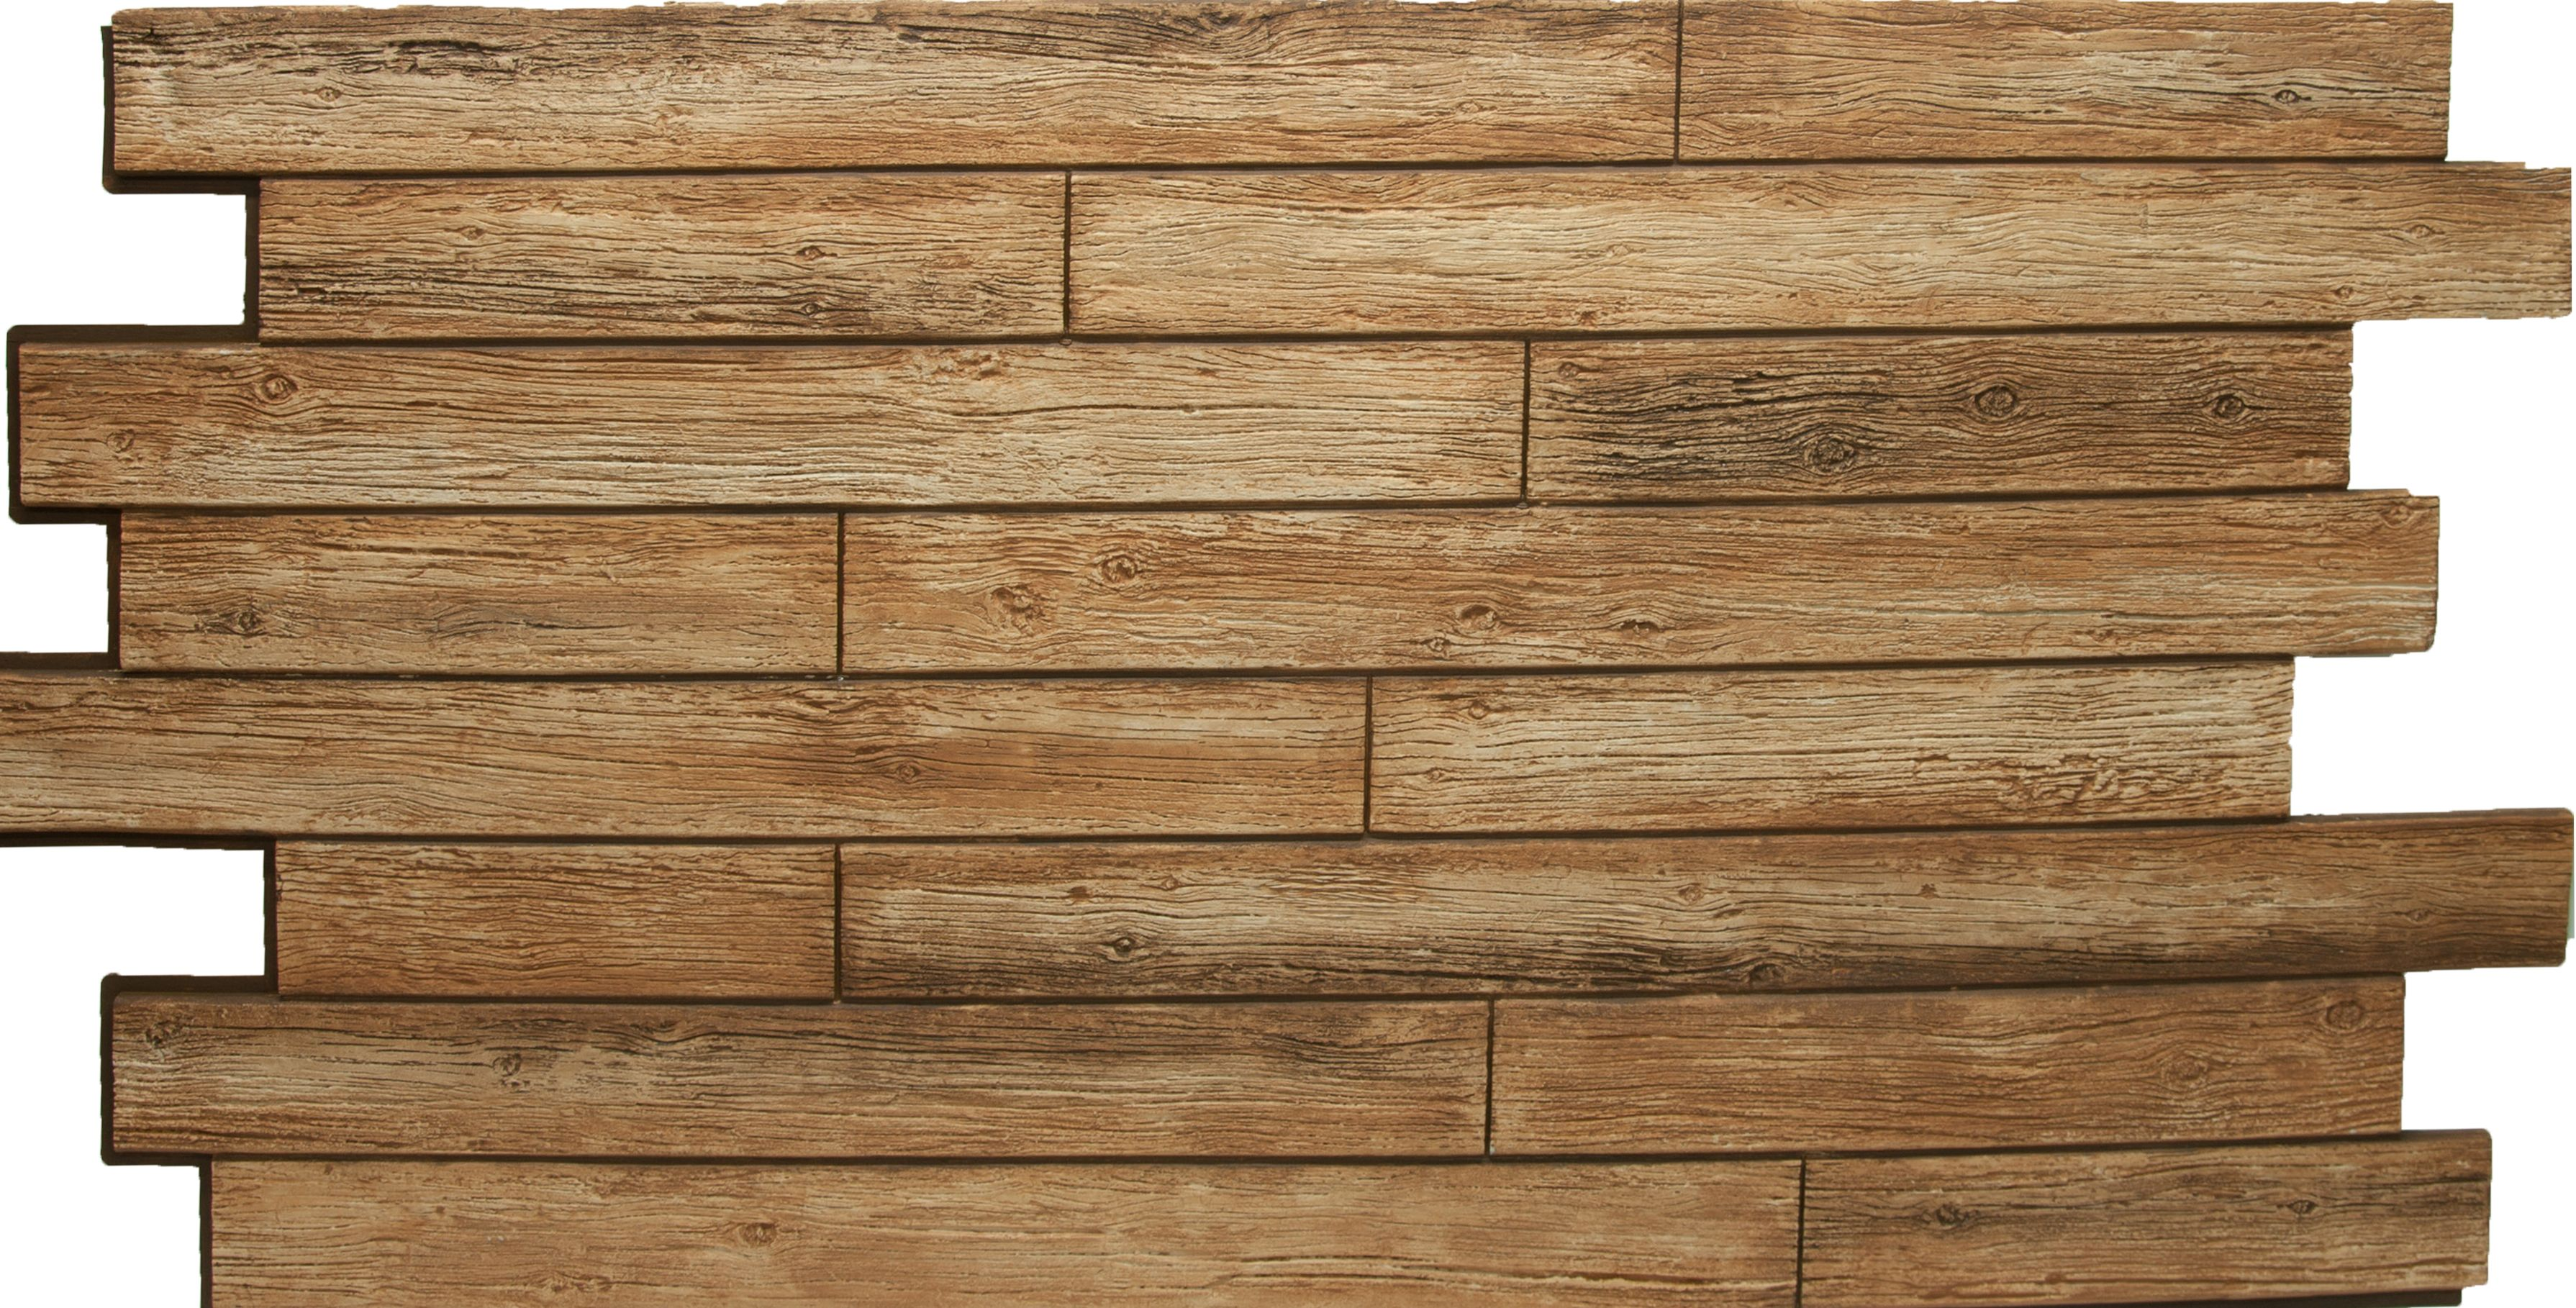 Tongue And Groove Wood 4x8 Dp2426 Wood Faux Stone Sheets Weathered Wood